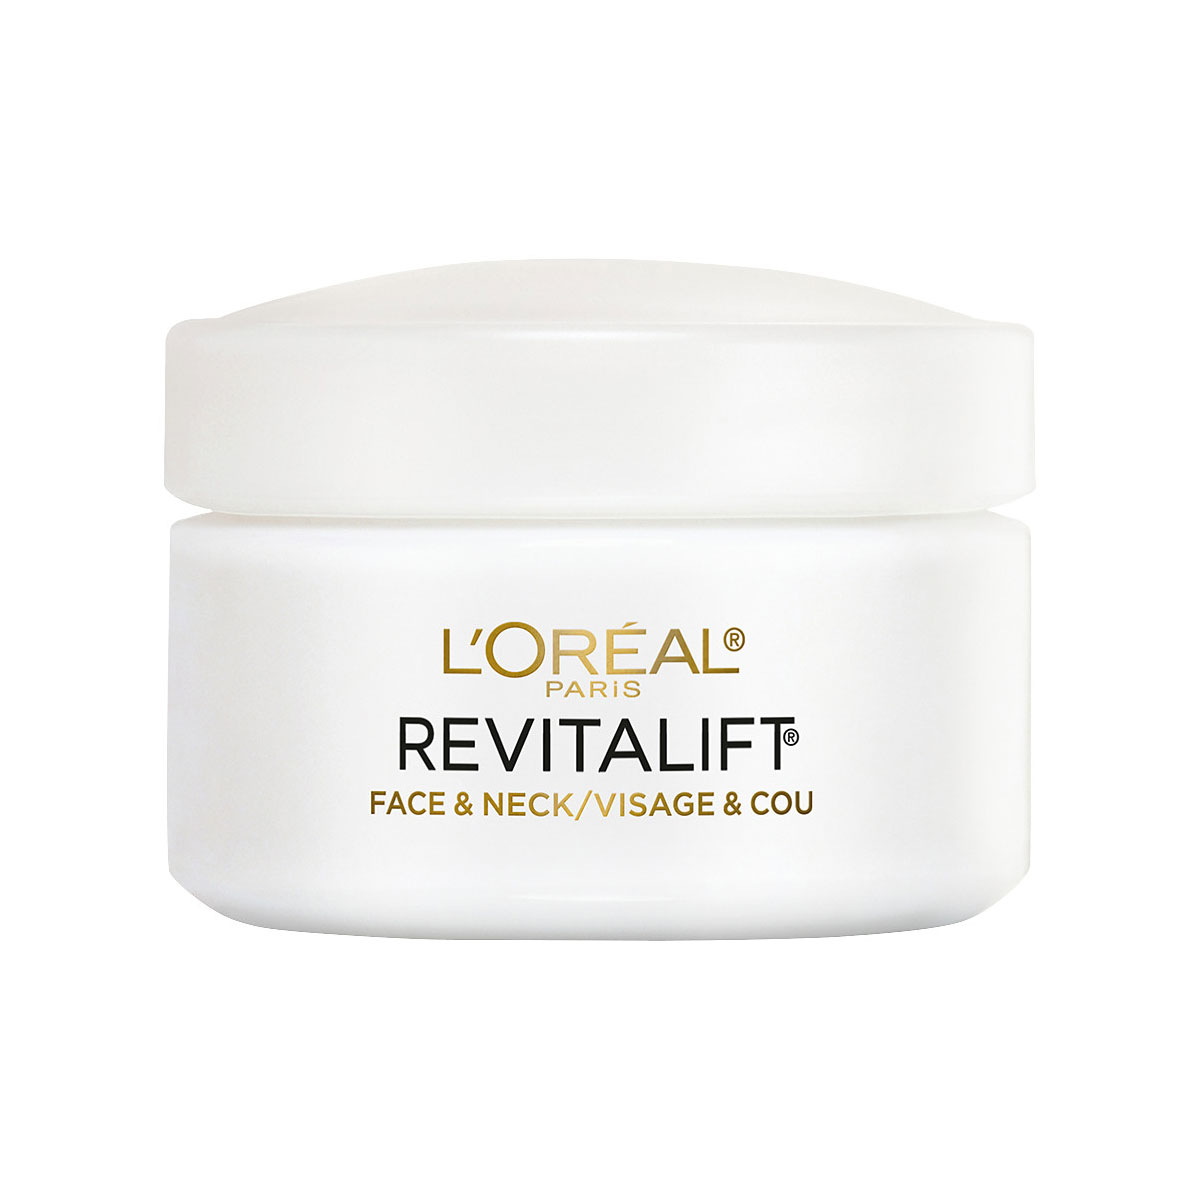 L'Oreal Revitalift Anti-Wrinkle + Firming Face & Neck Moisturizer